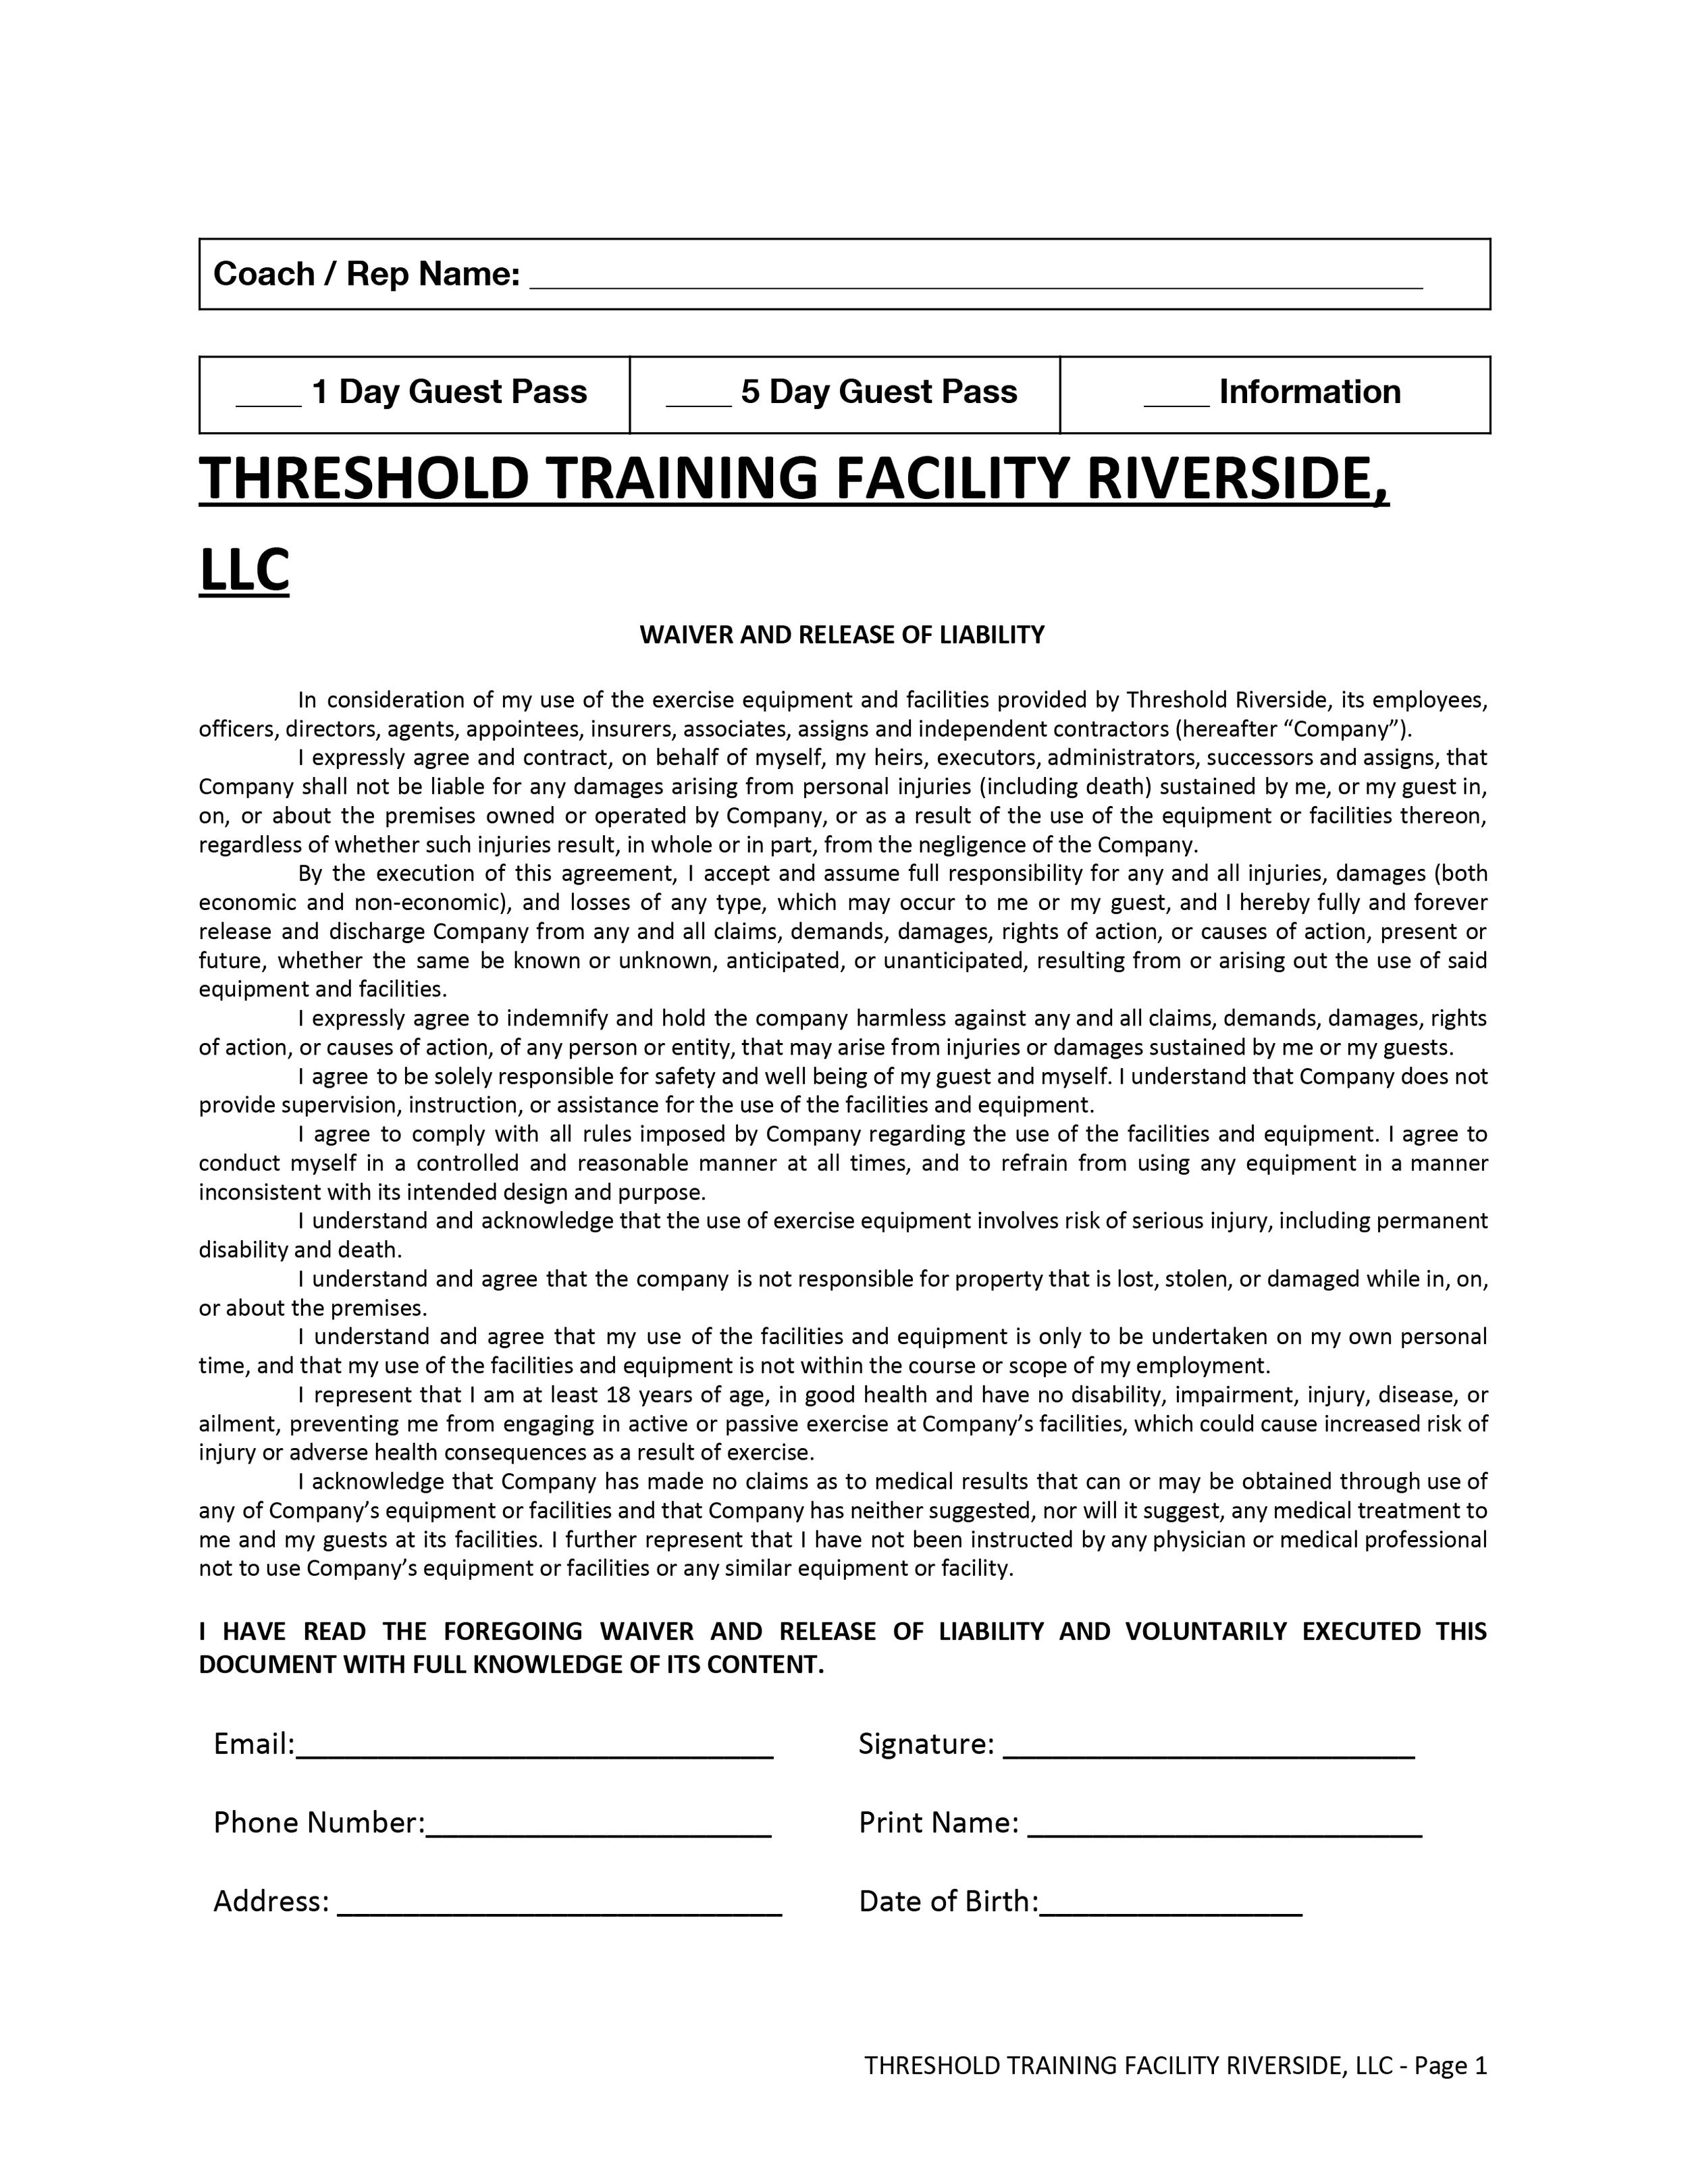 Threashold Waiver and Release of Liability.jpg